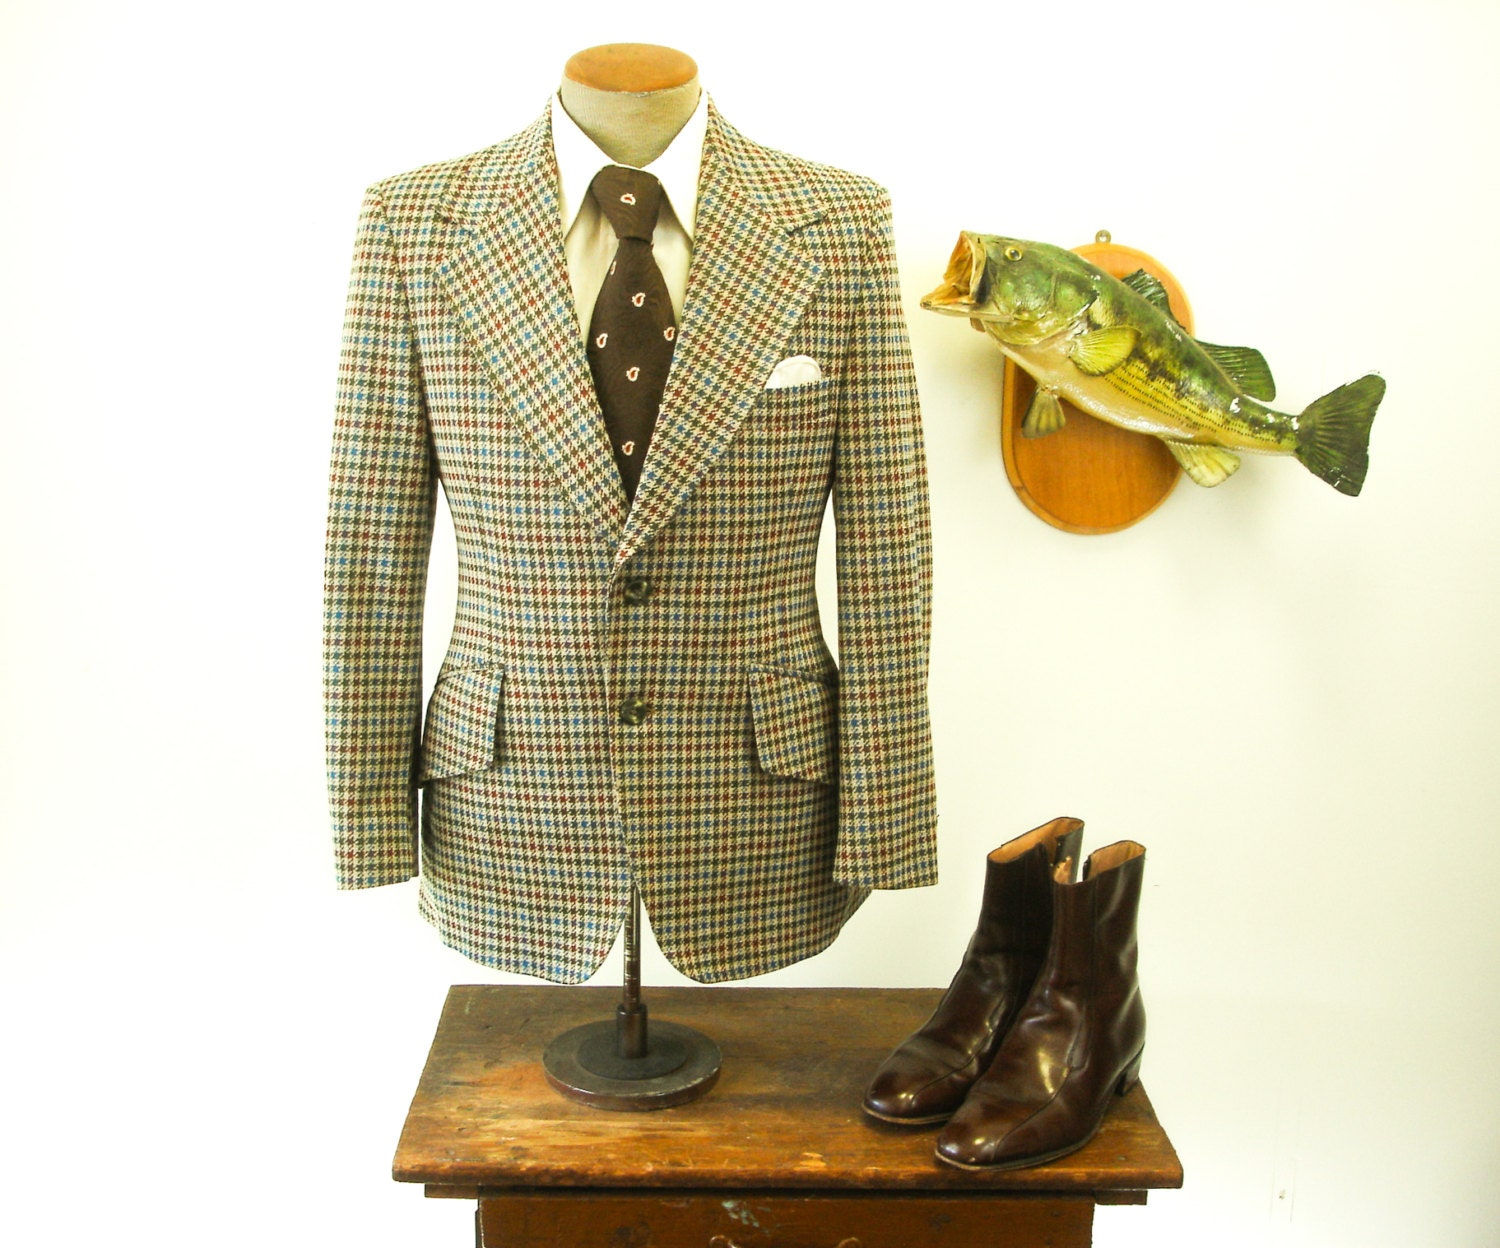 1970s SEARS Houndstooth Suit Jacket Disco Era Mens Colorful